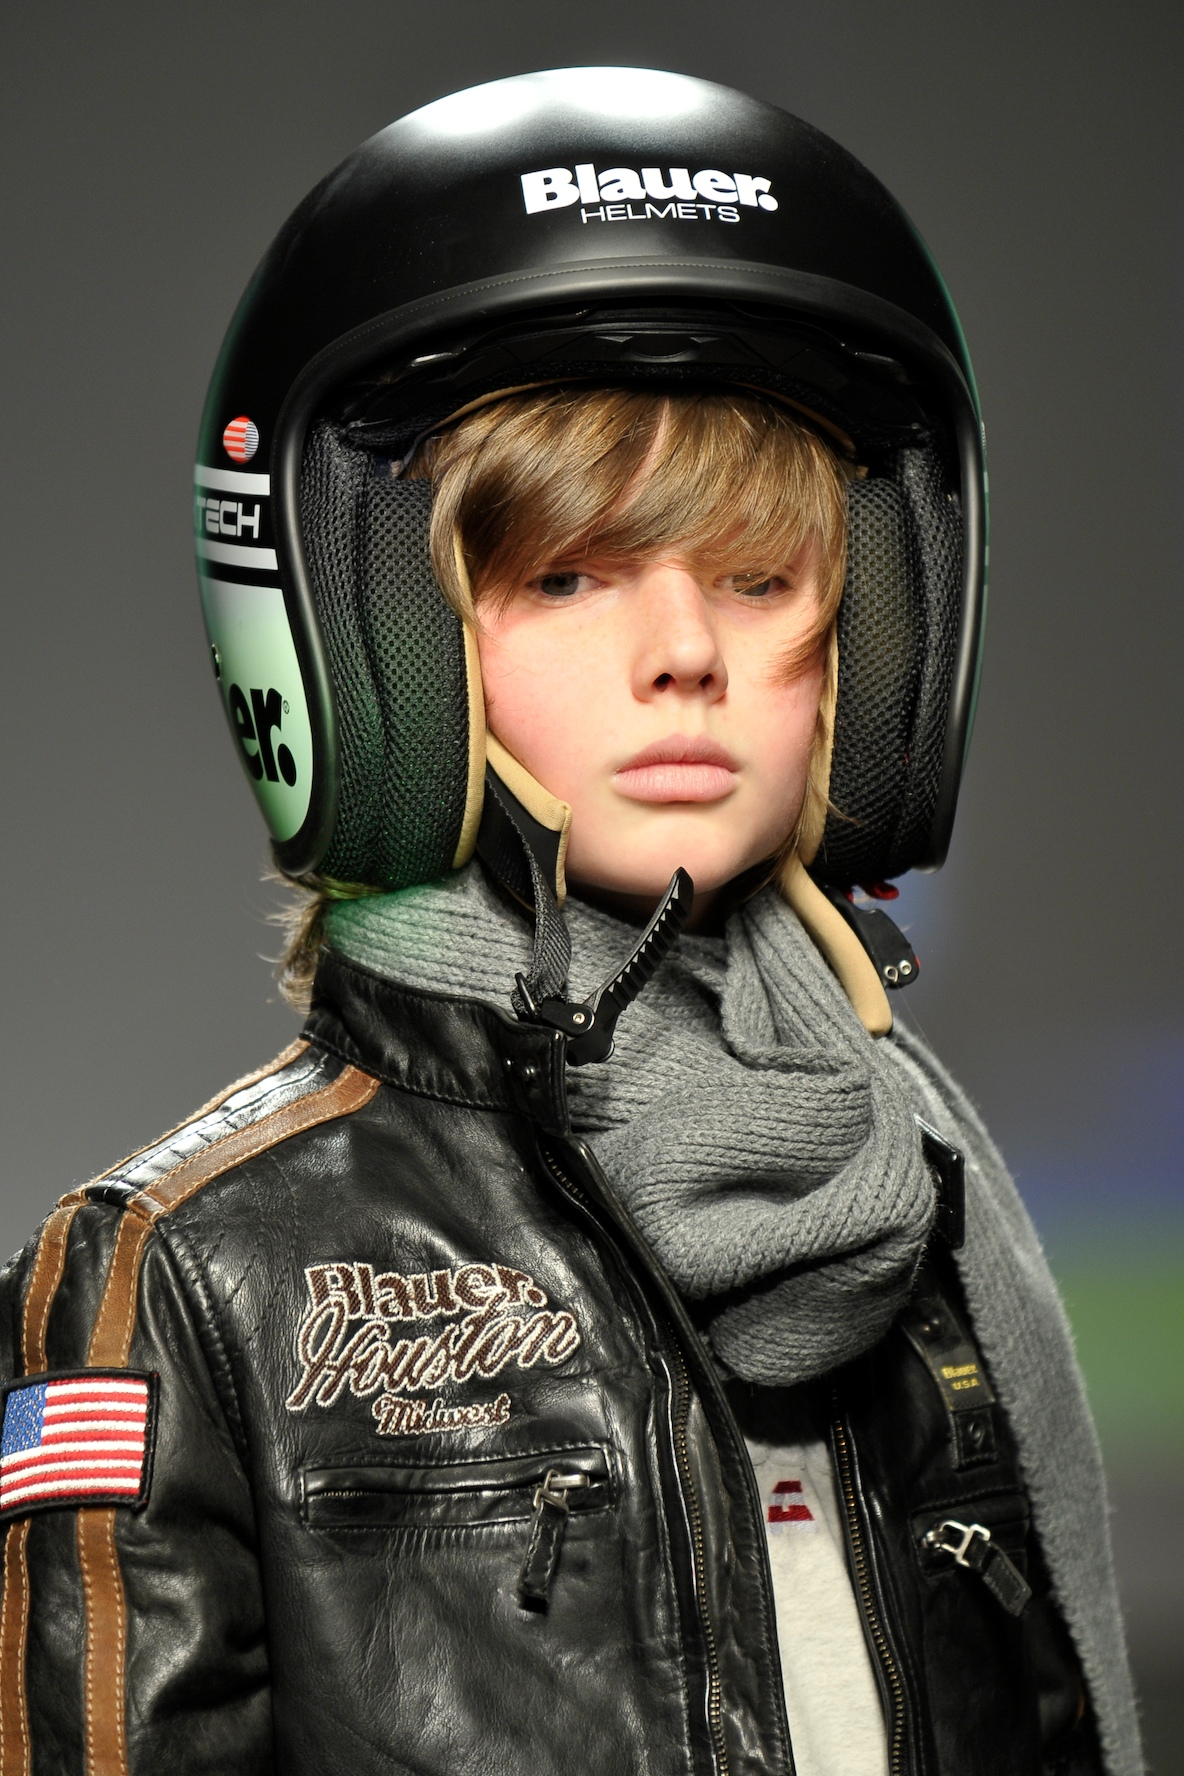 Motorbike helmets at Blauer Junior for boys winter 2011